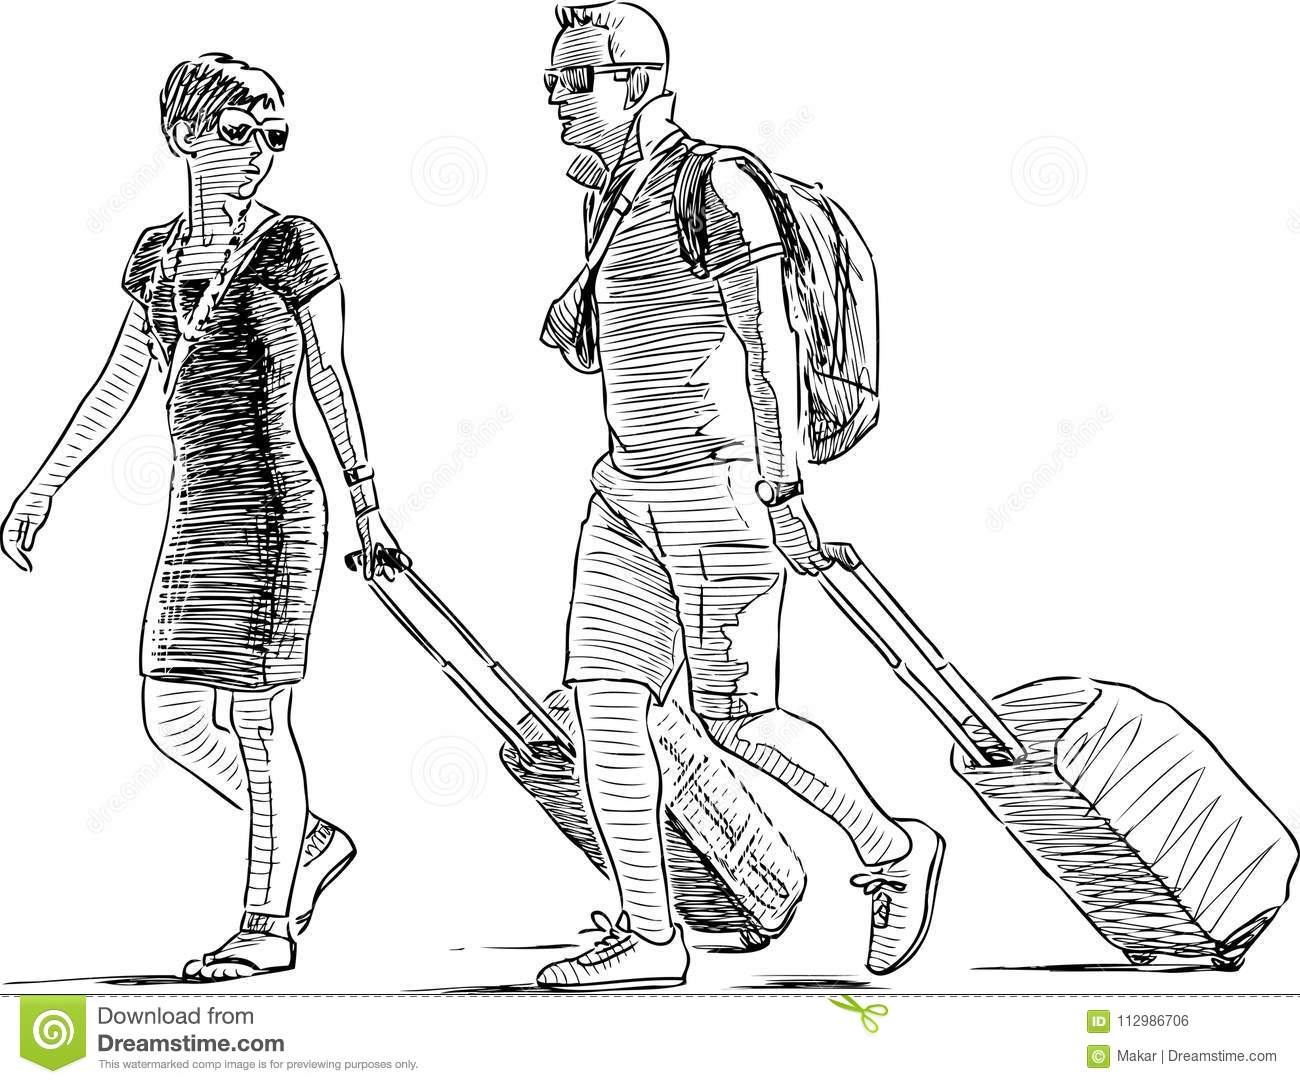 Sketch of a couple of vacationers with luggage